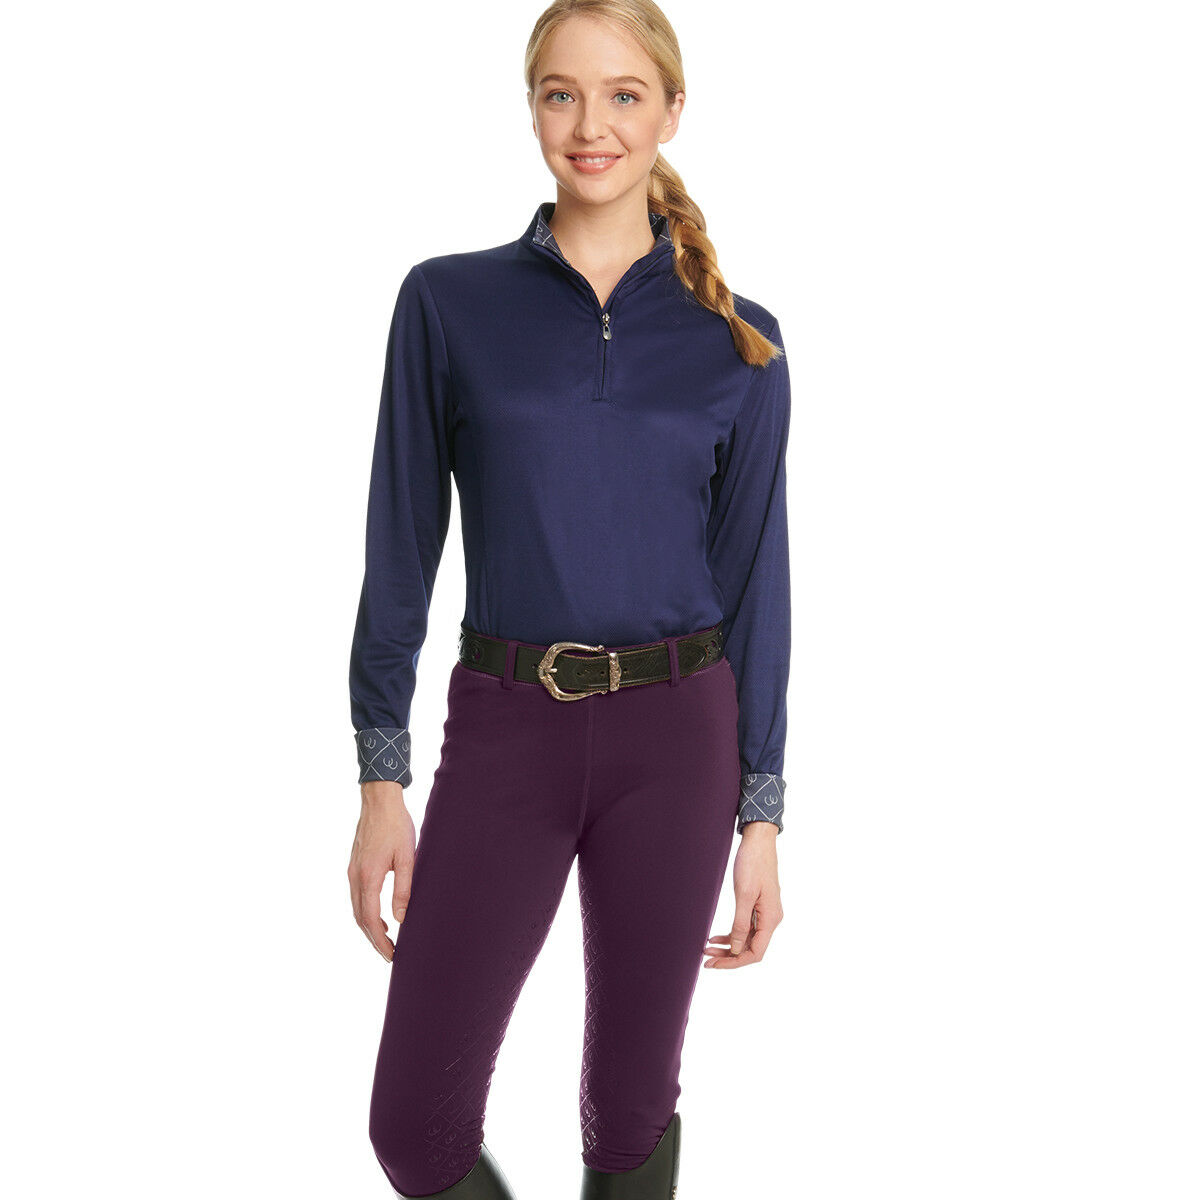 Ovation Ladies Equinox 3-Season  Full Seat Pull-On Breech - Differ colors Sizes  simple and generous design